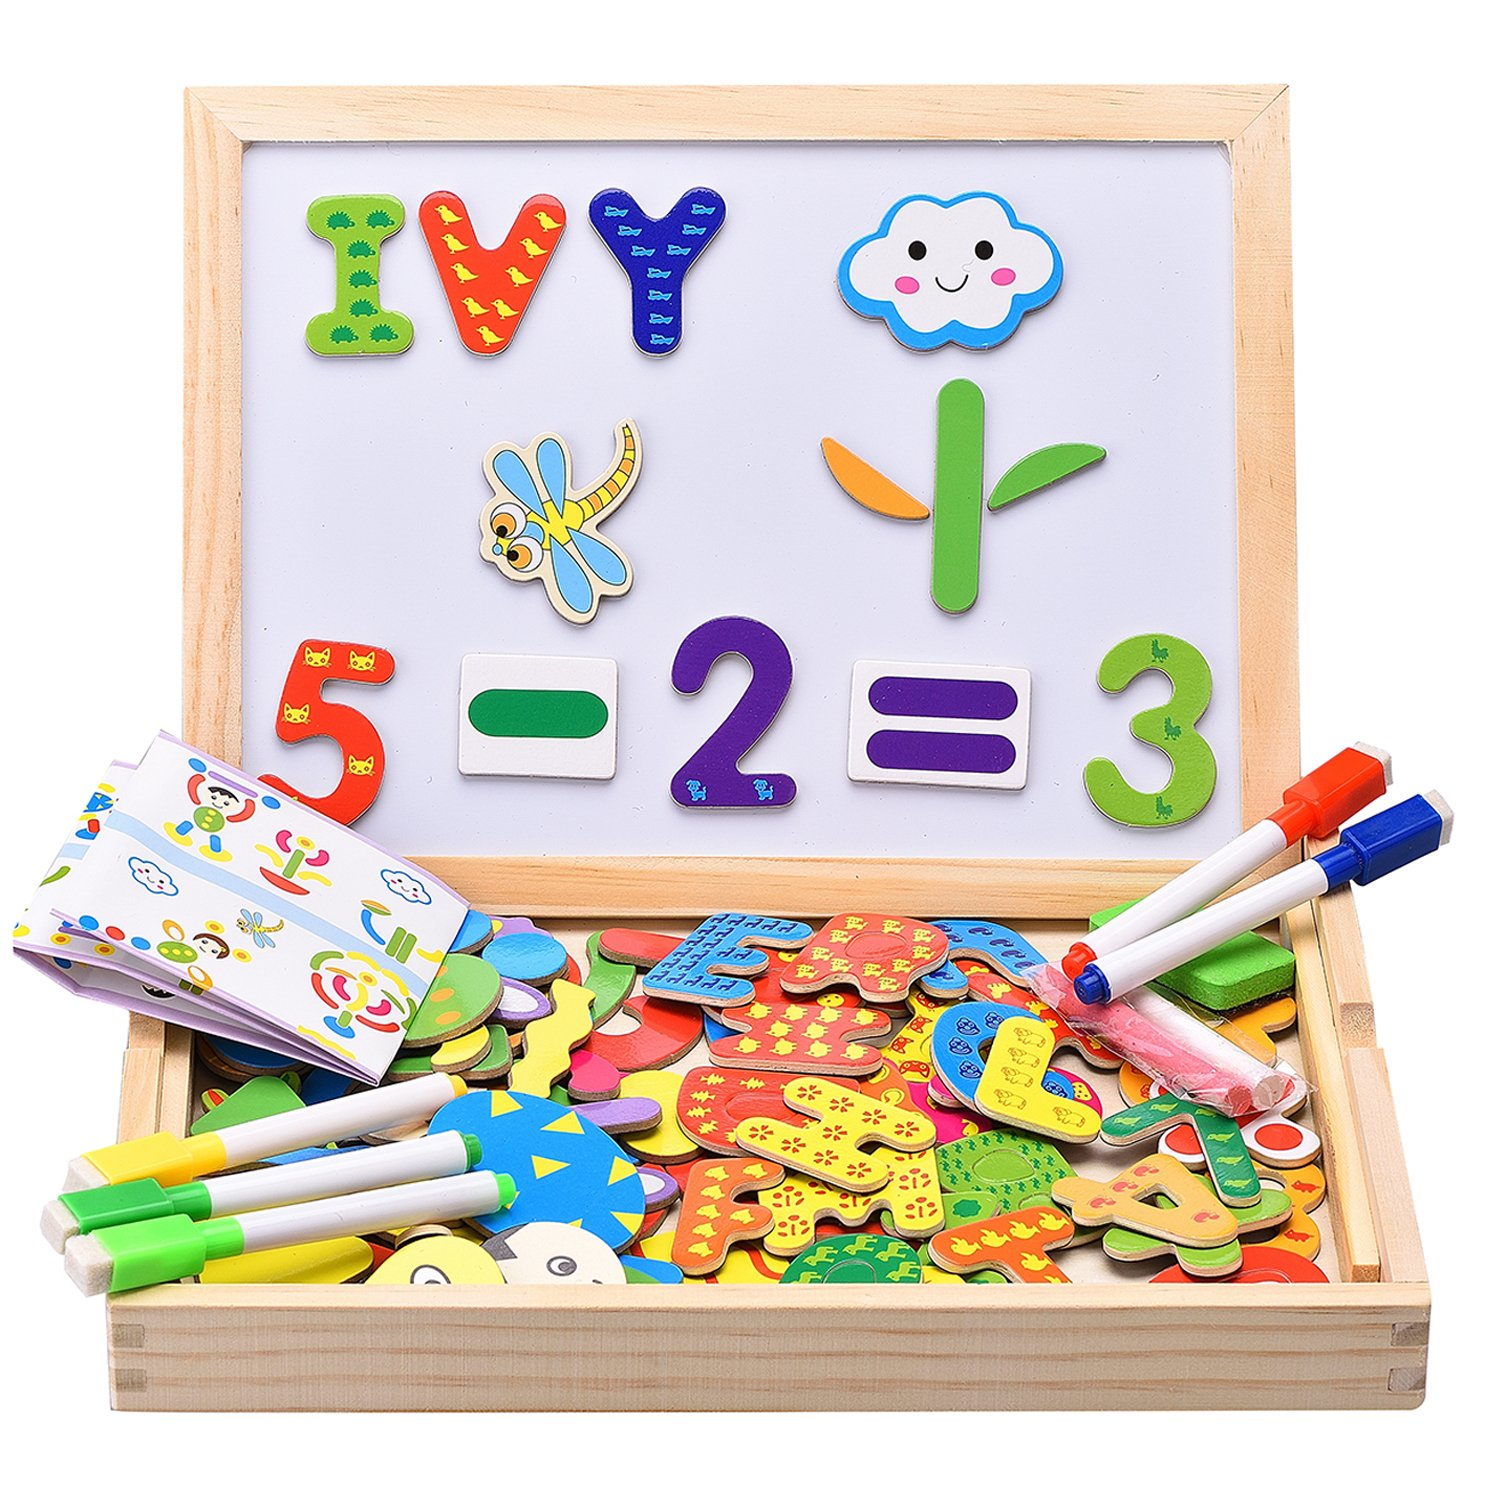 INNOCHEER Wooden Magnetic Puzzles, Letters/Numbers/Shape 110 Pieces with 5 Colored Dry Erase Markers Set - Learning & Educational Game Toy for Kids by INNOCHEER